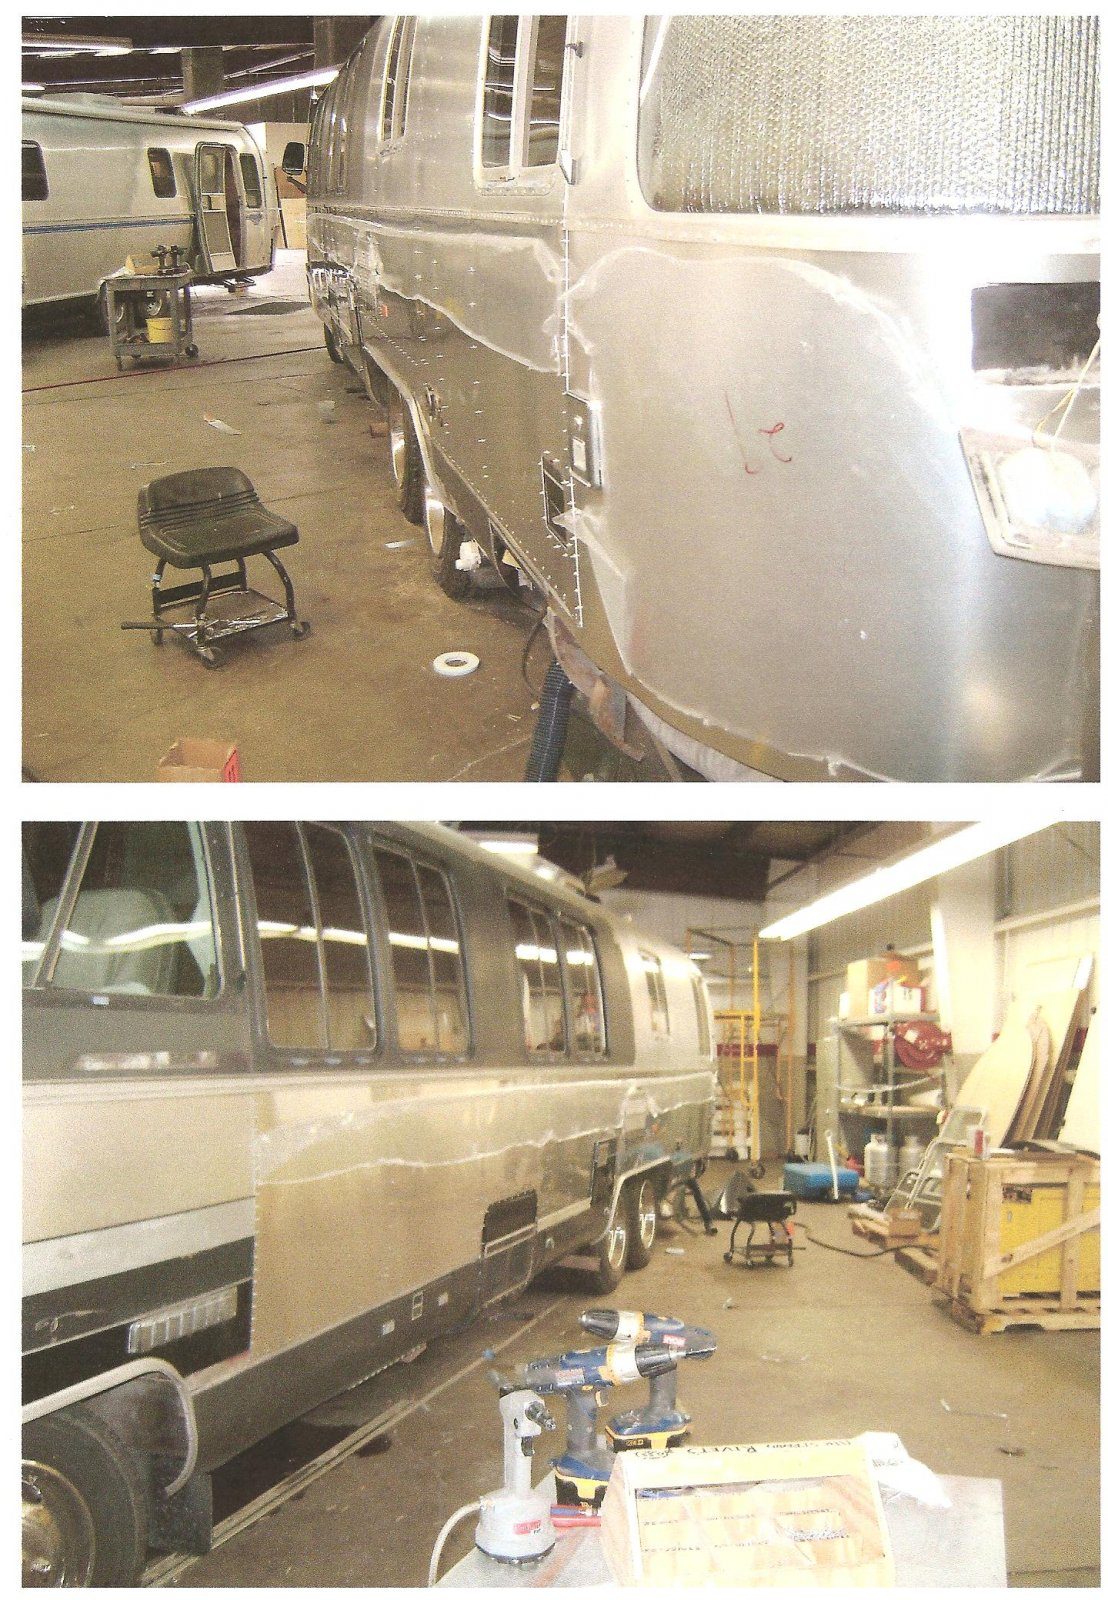 Click image for larger version  Name:345 getting rear wrap around & side panel.jpg Views:101 Size:447.5 KB ID:79549